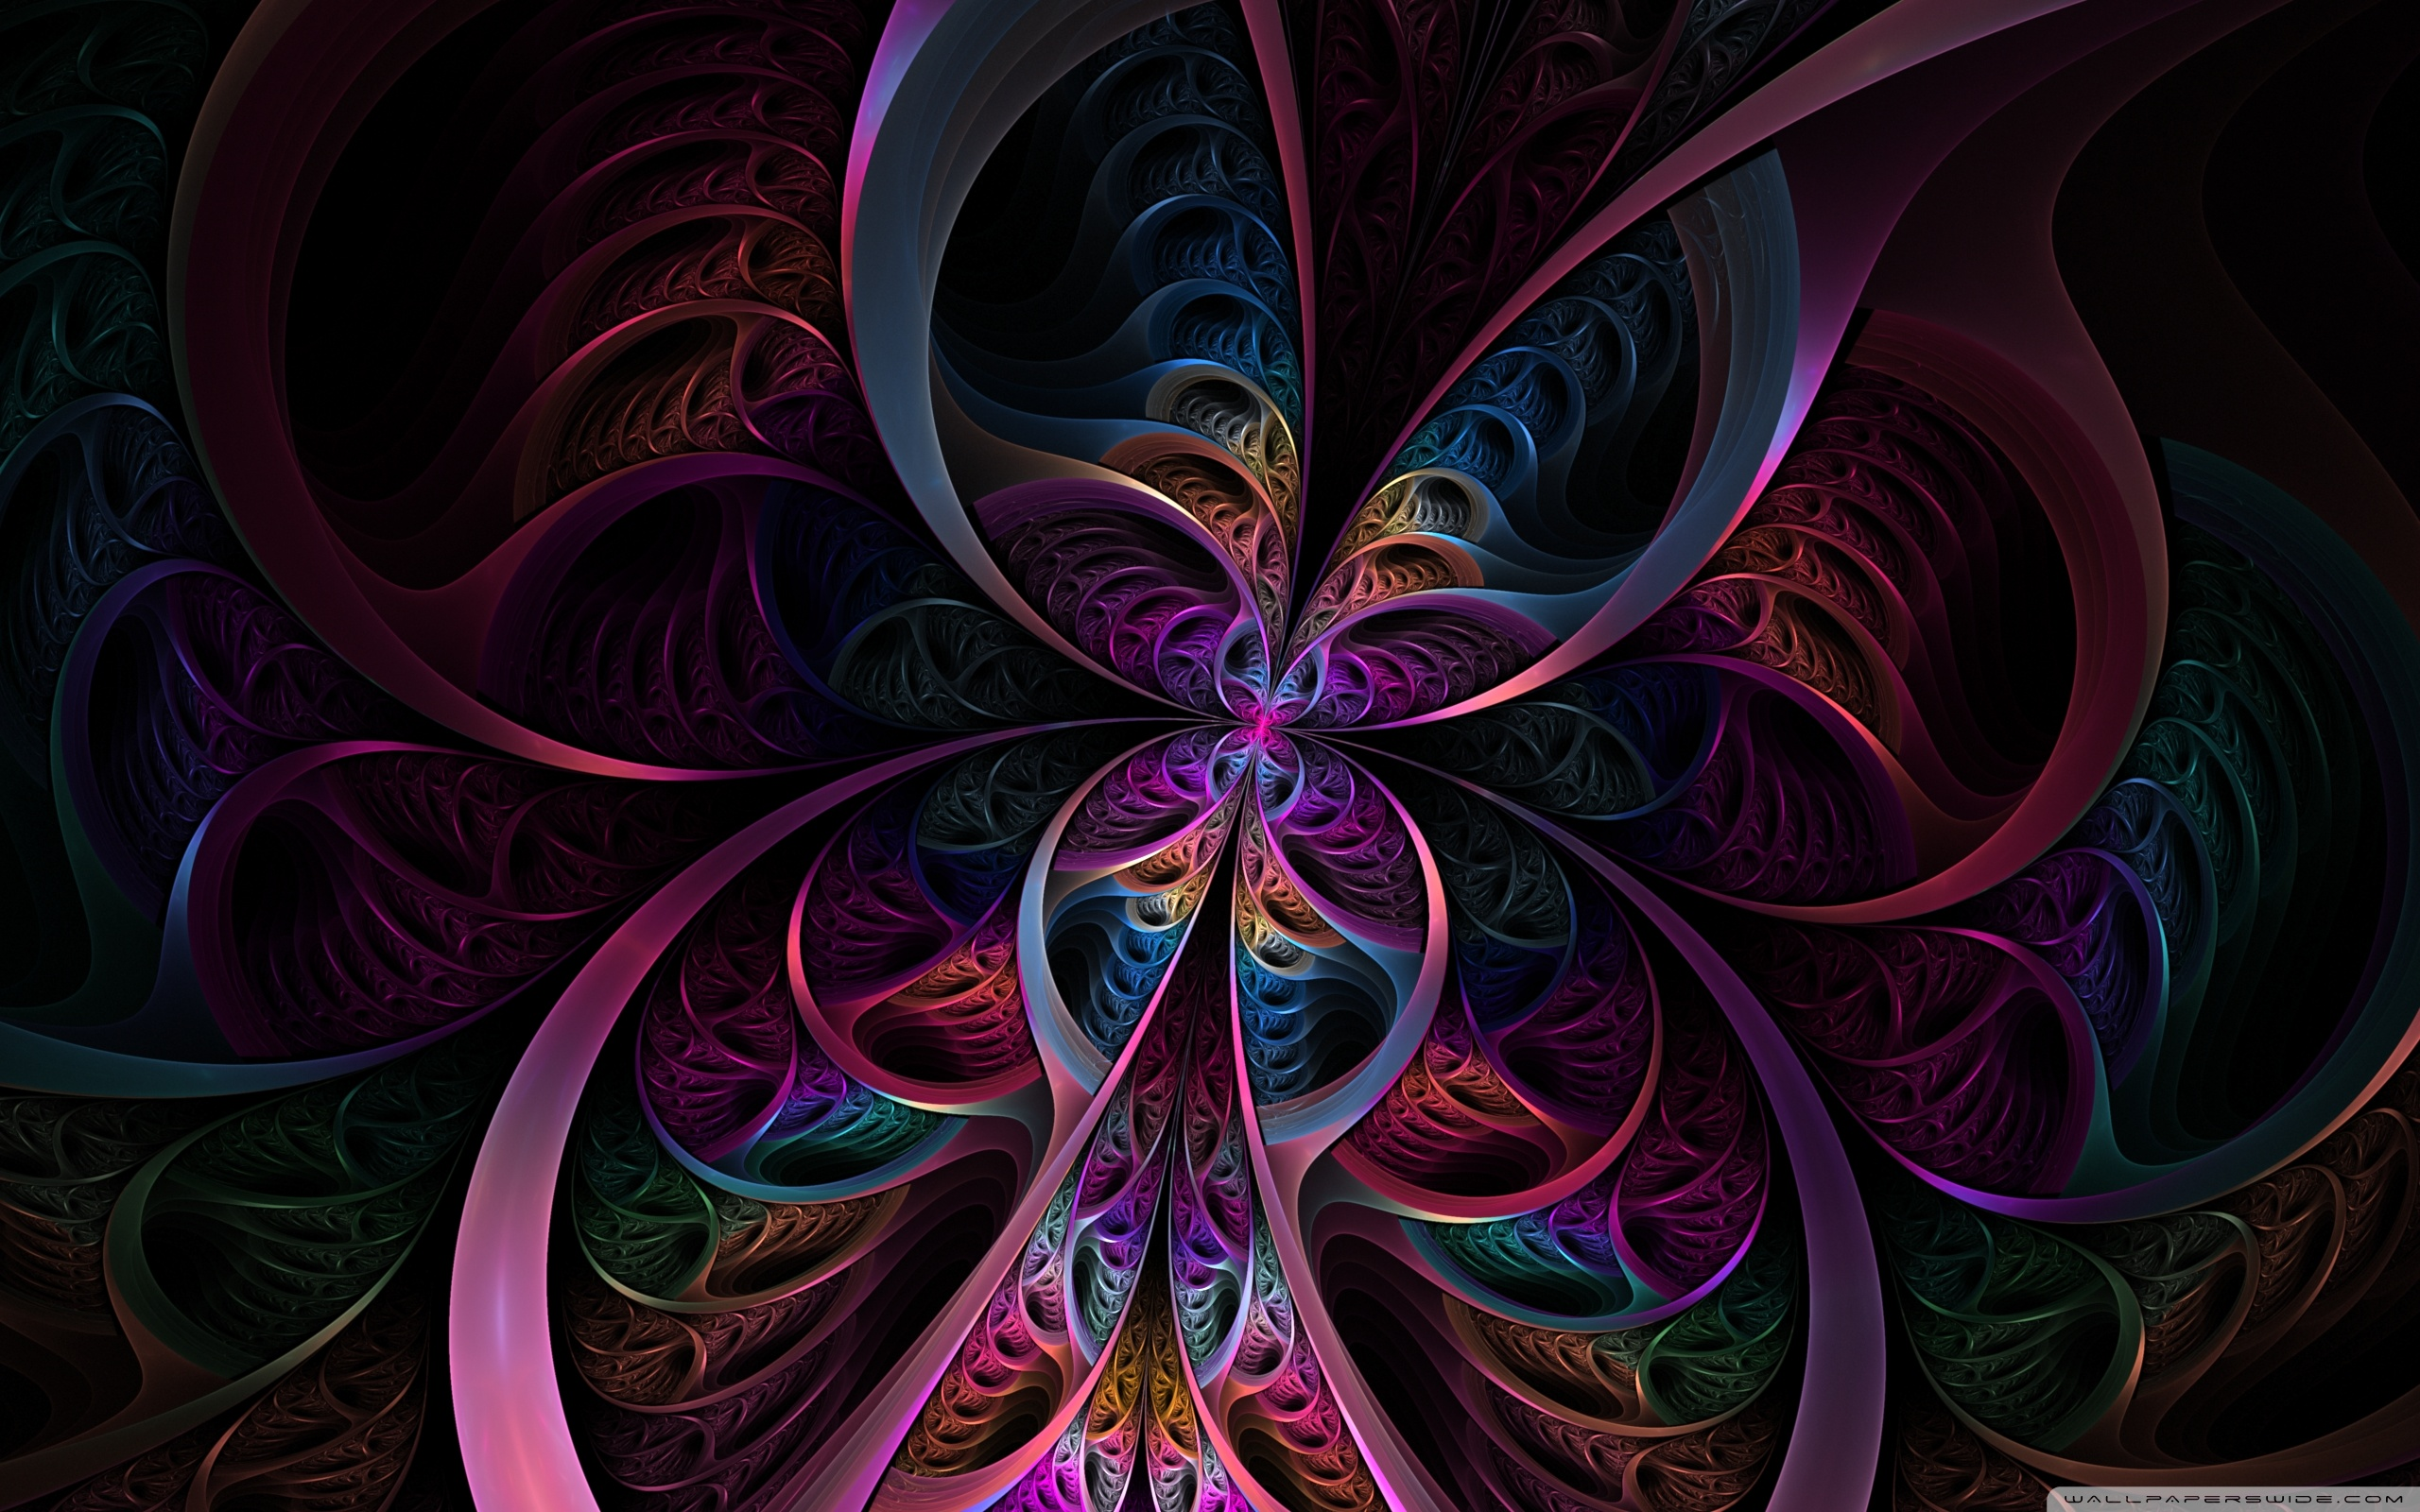 Wonderful Wallpaper Macbook Psychedelic - psychedelic_butterfly-wallpaper-2560x1600  Trends_924983.jpg